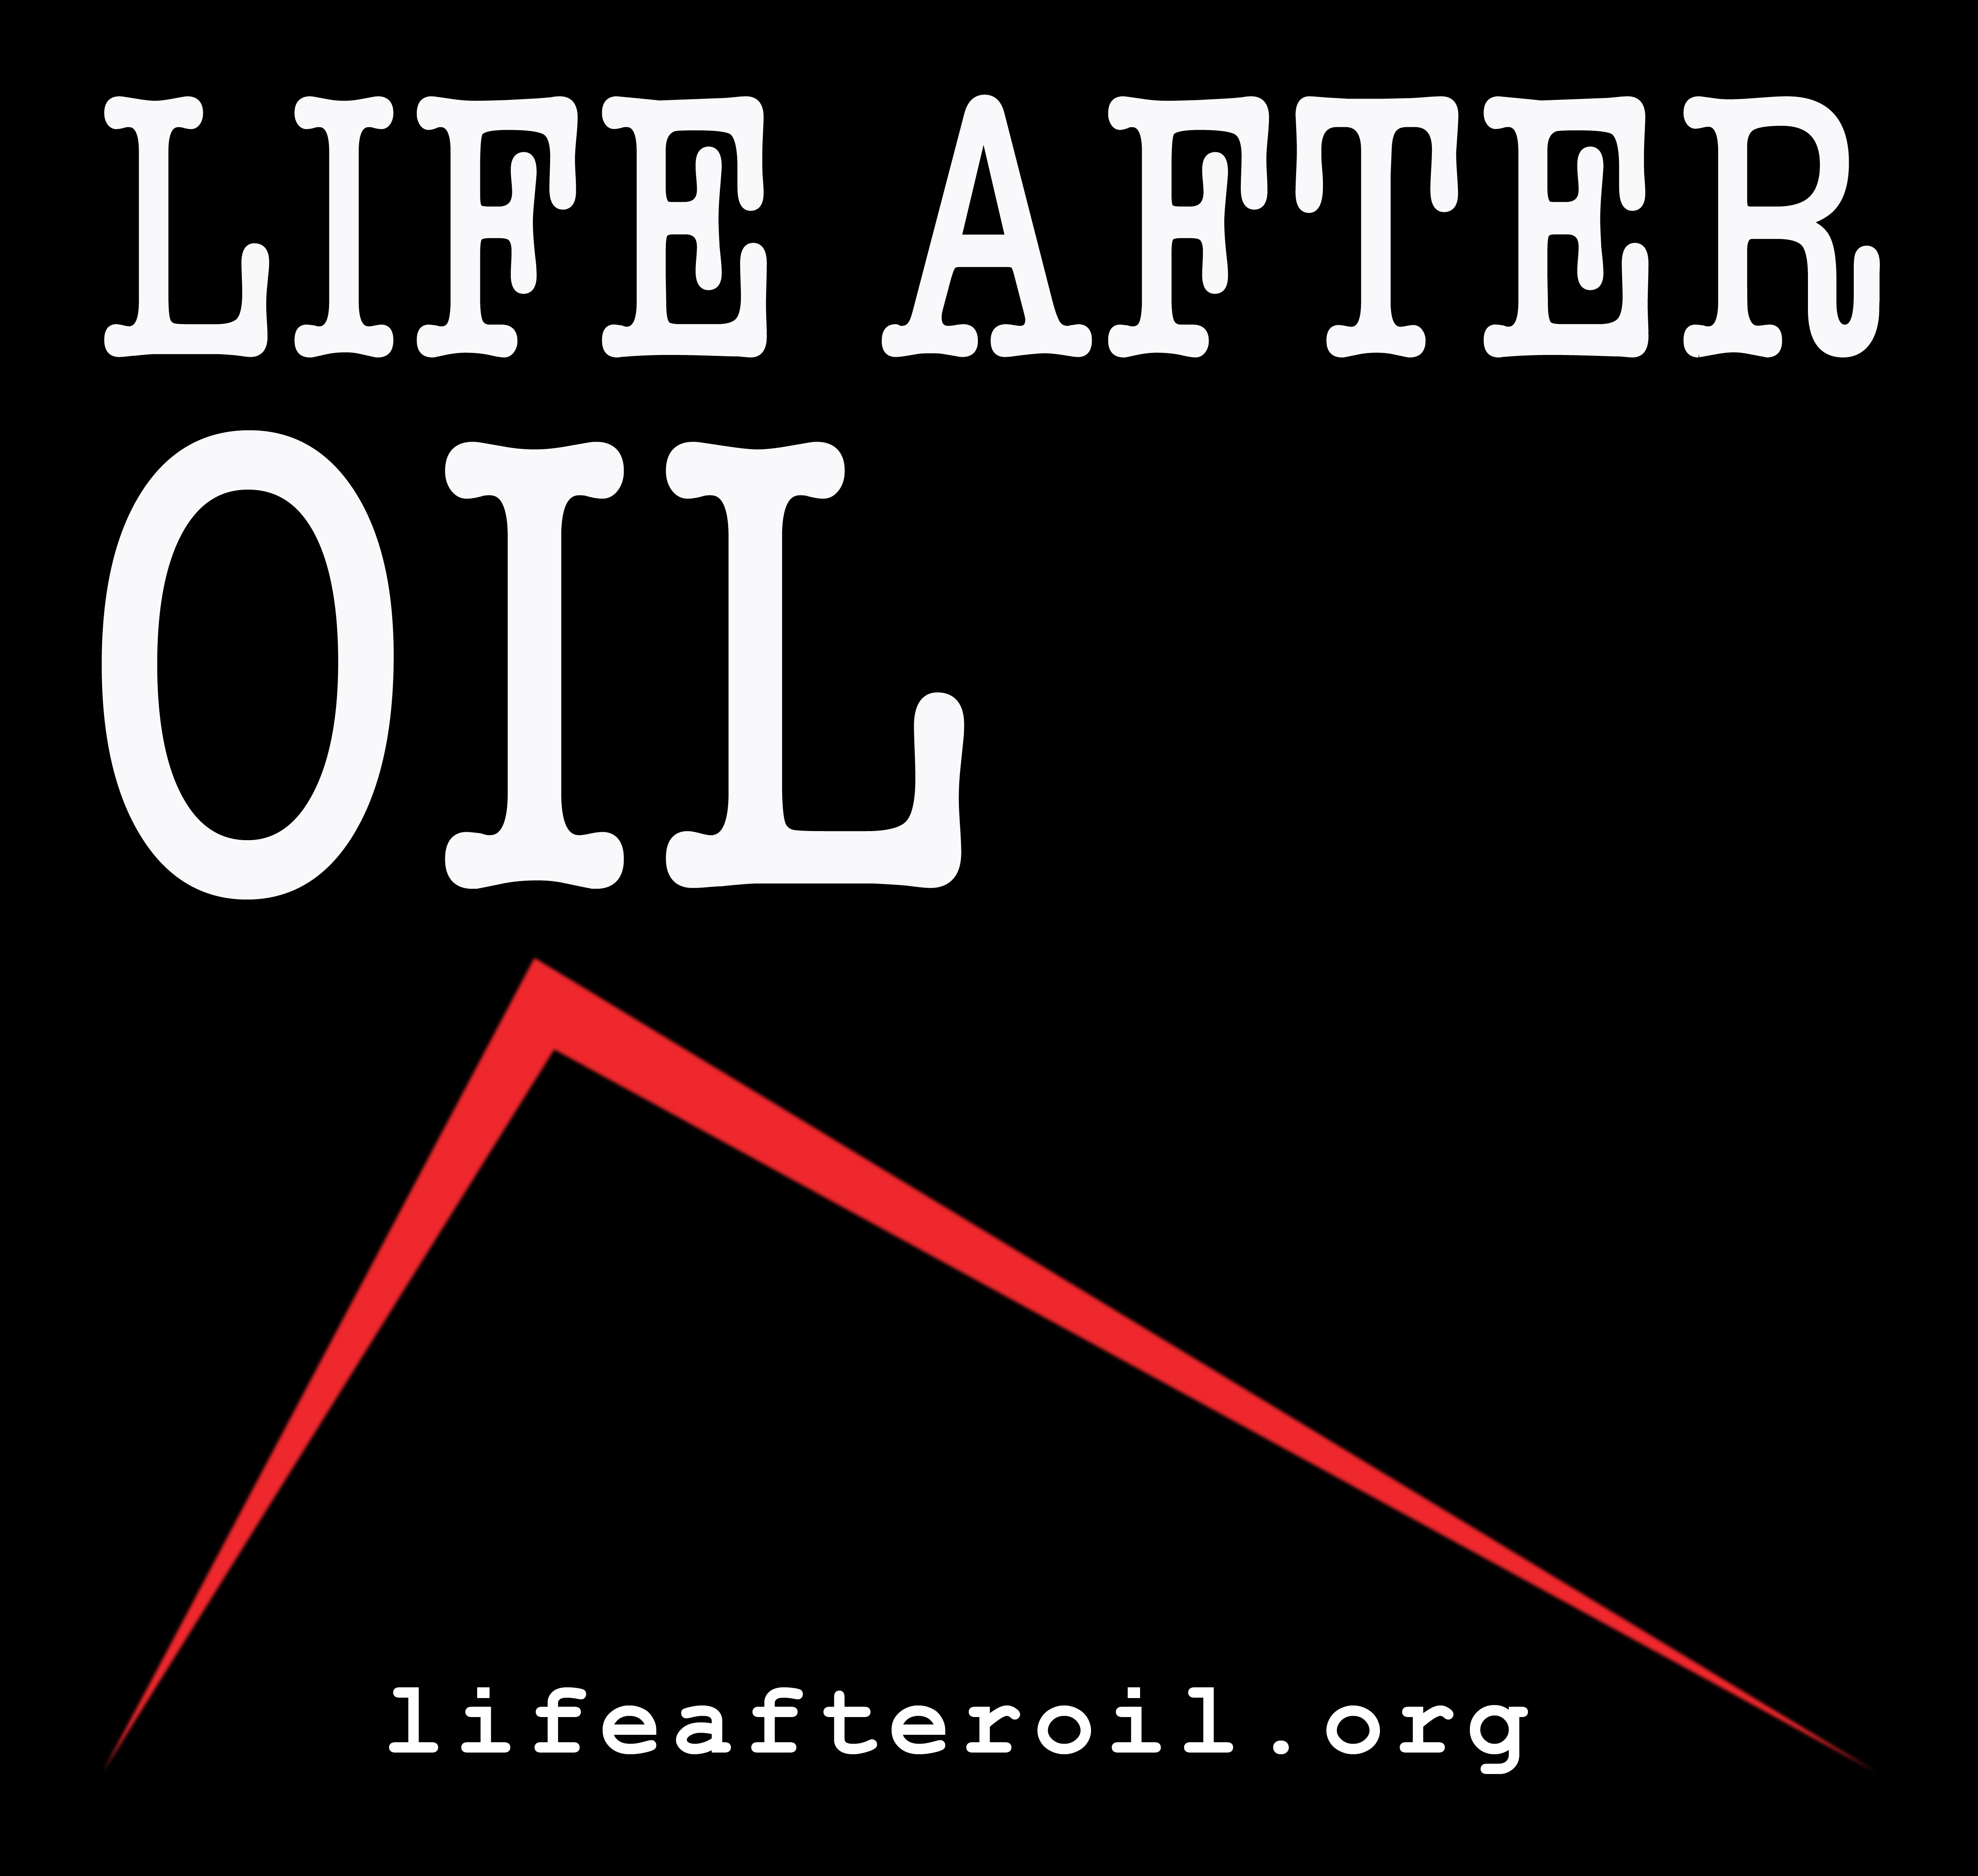 lifeafteroilblack